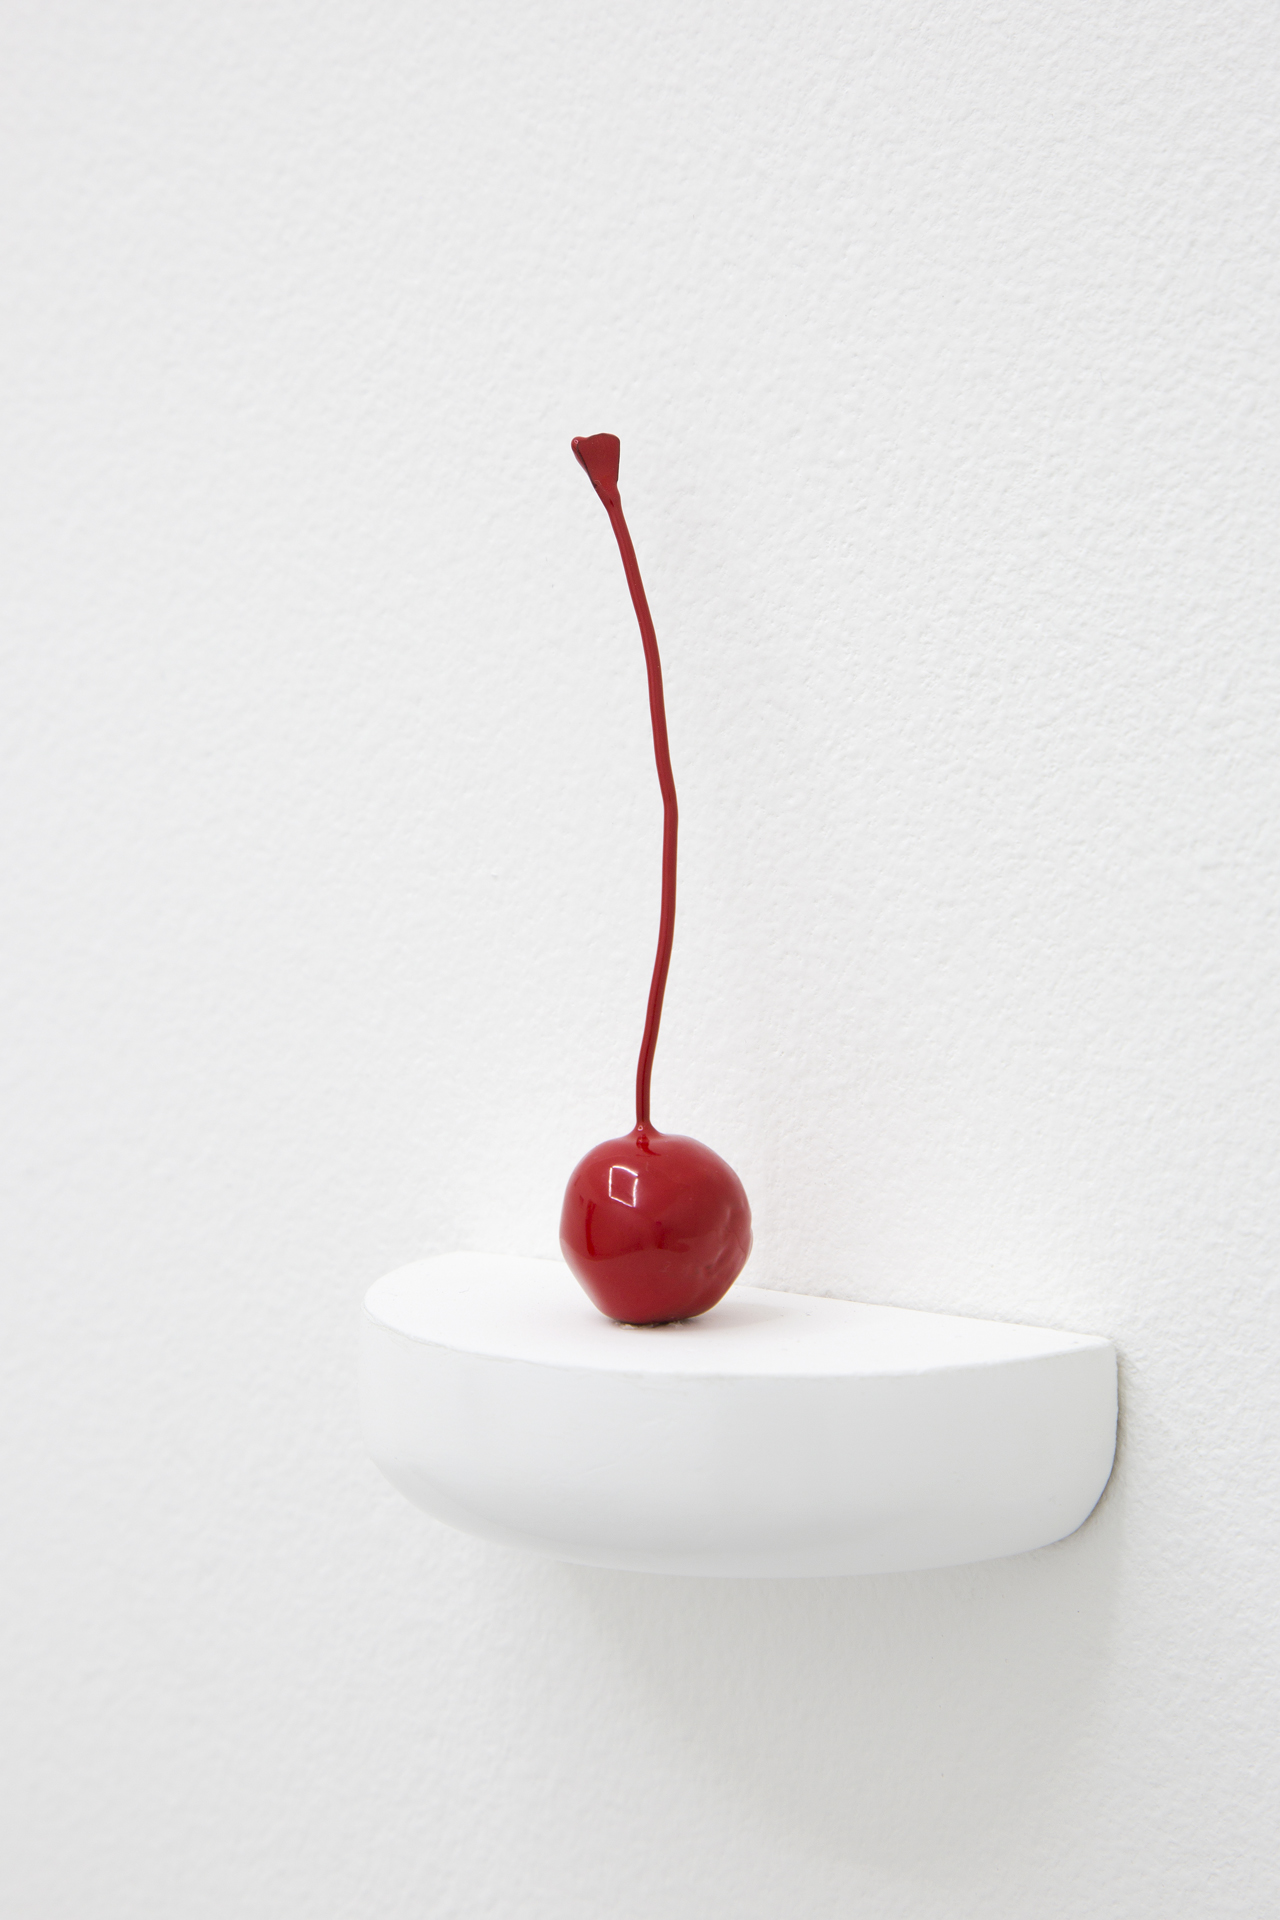 Luis Miguel Bendaña, Cherry, 2018. Powder coated cast bronze, 2 x 2 x 9cm; 1 x 1 x 3.5 in.